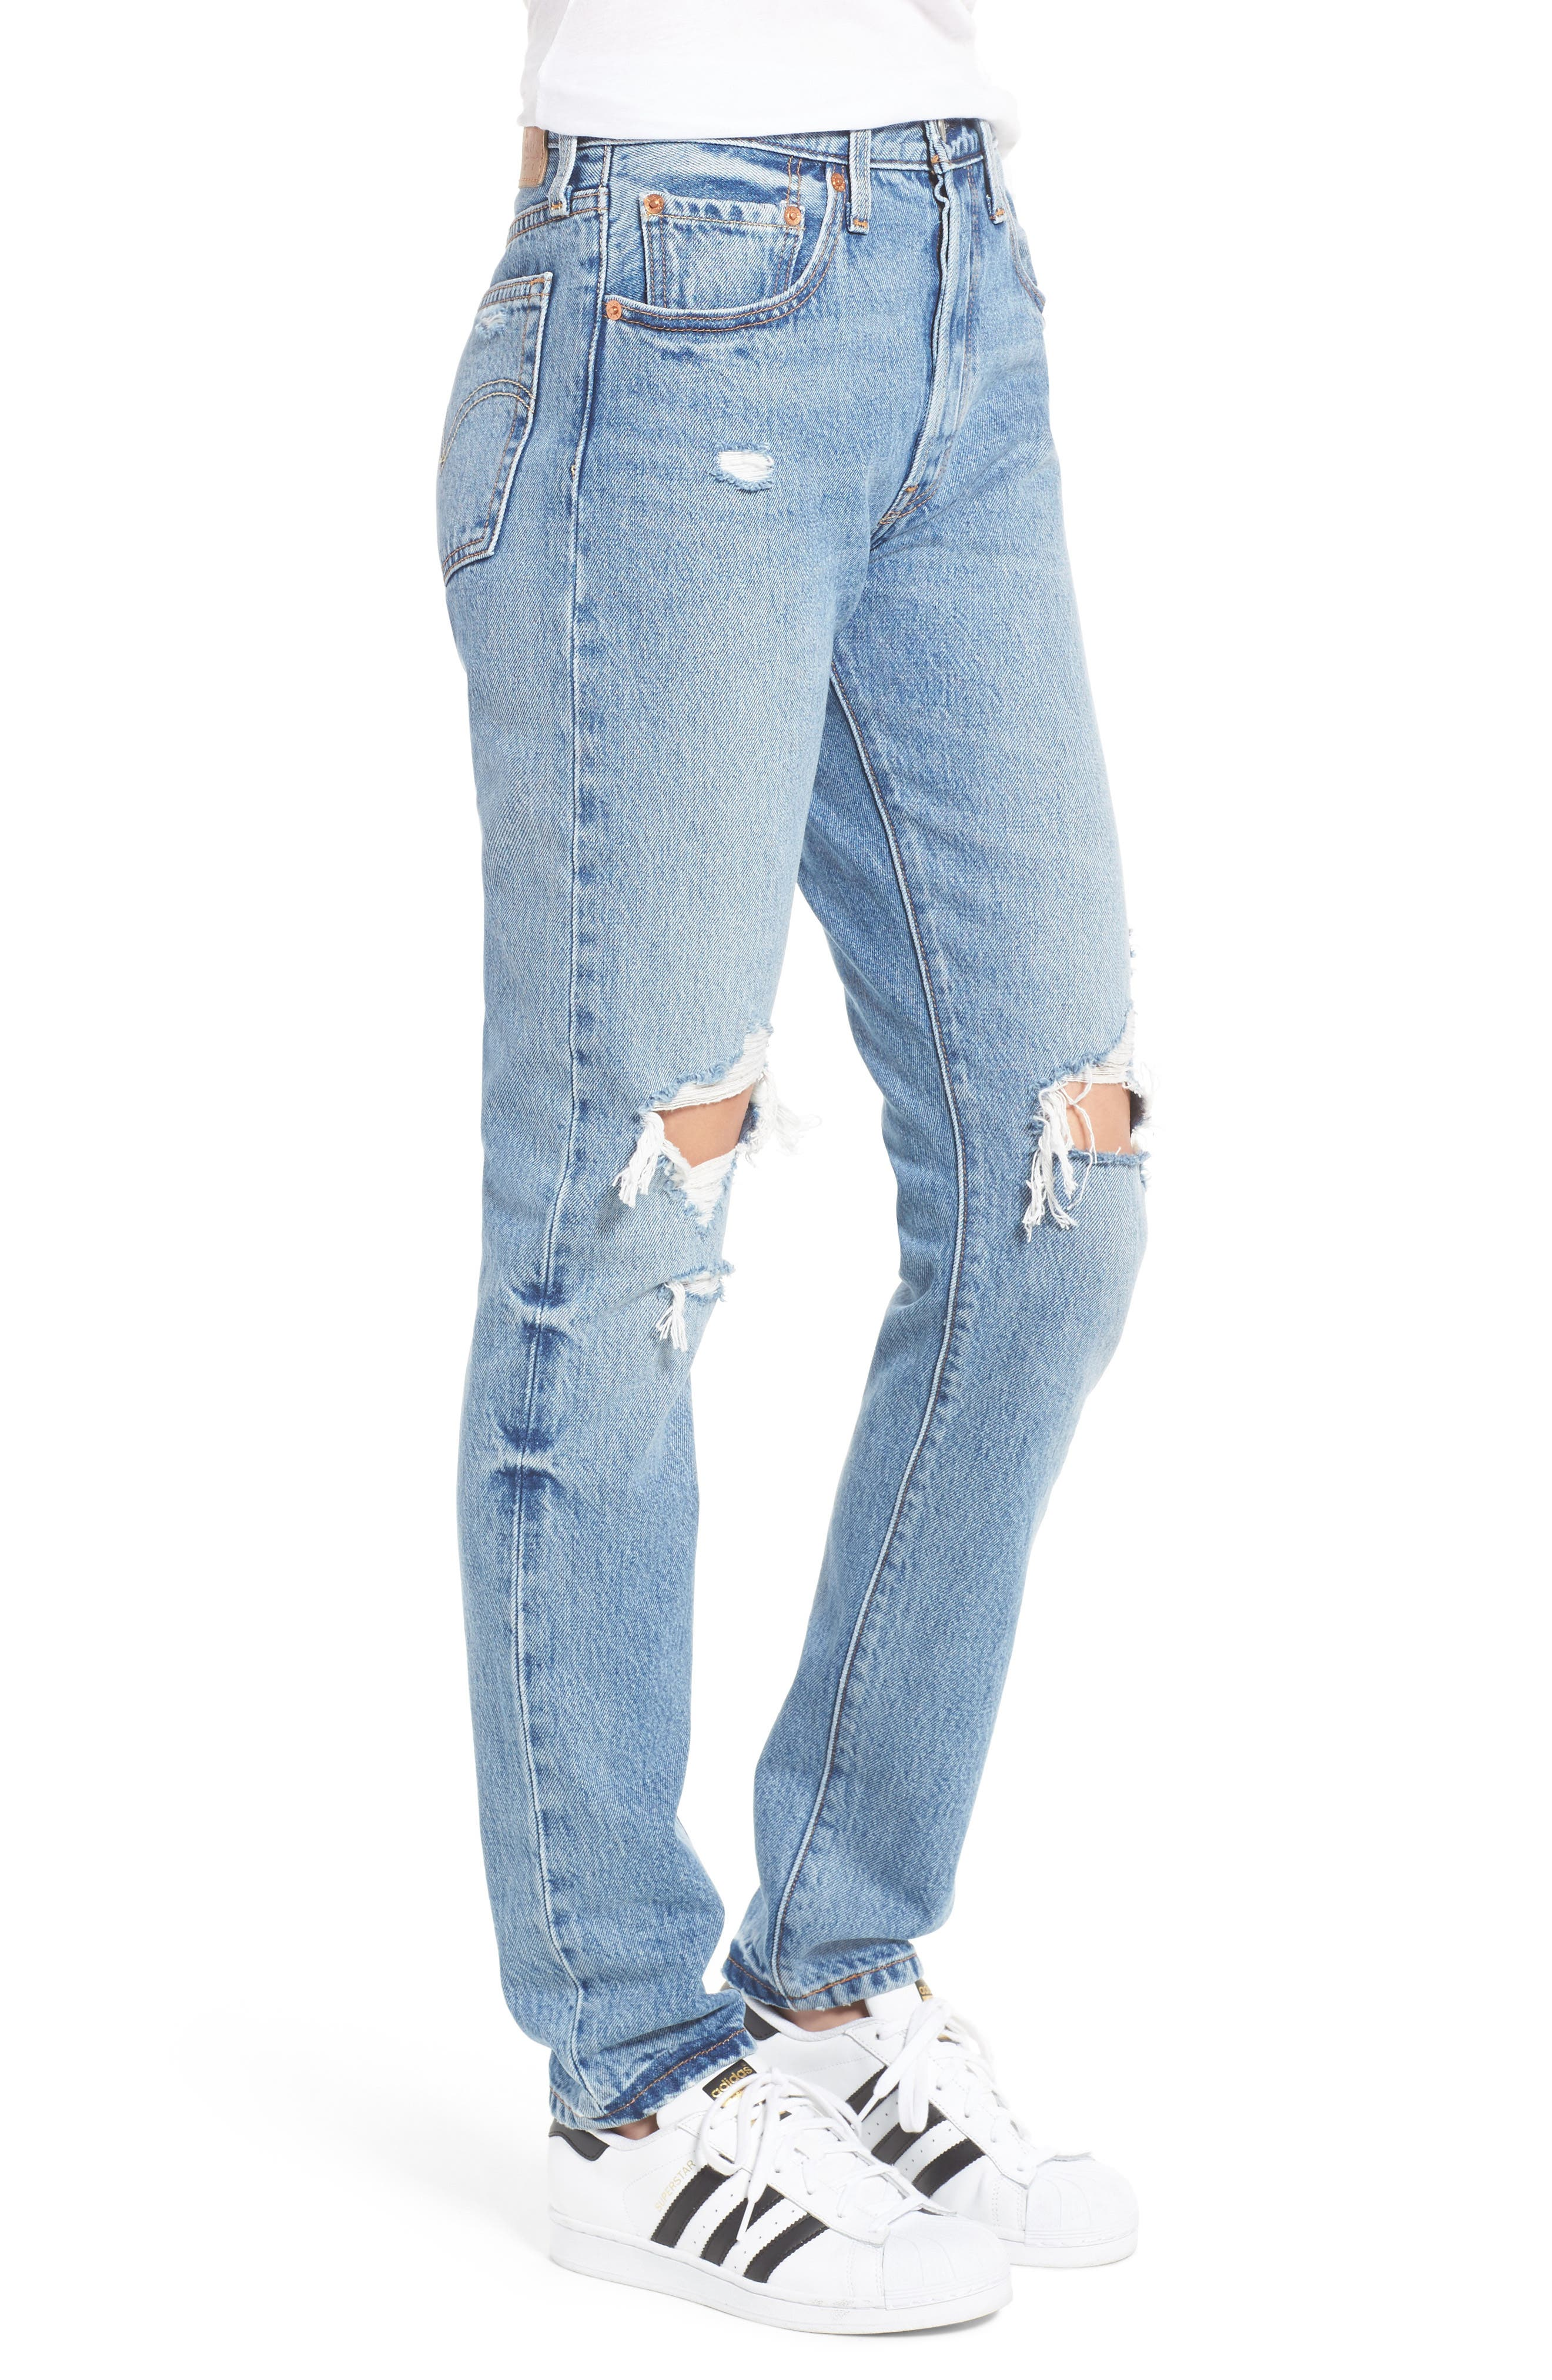 LEVI'S<SUP>®</SUP>, Levis<sup>®</sup> 501 Ripped Skinny Jeans, Alternate thumbnail 3, color, 400